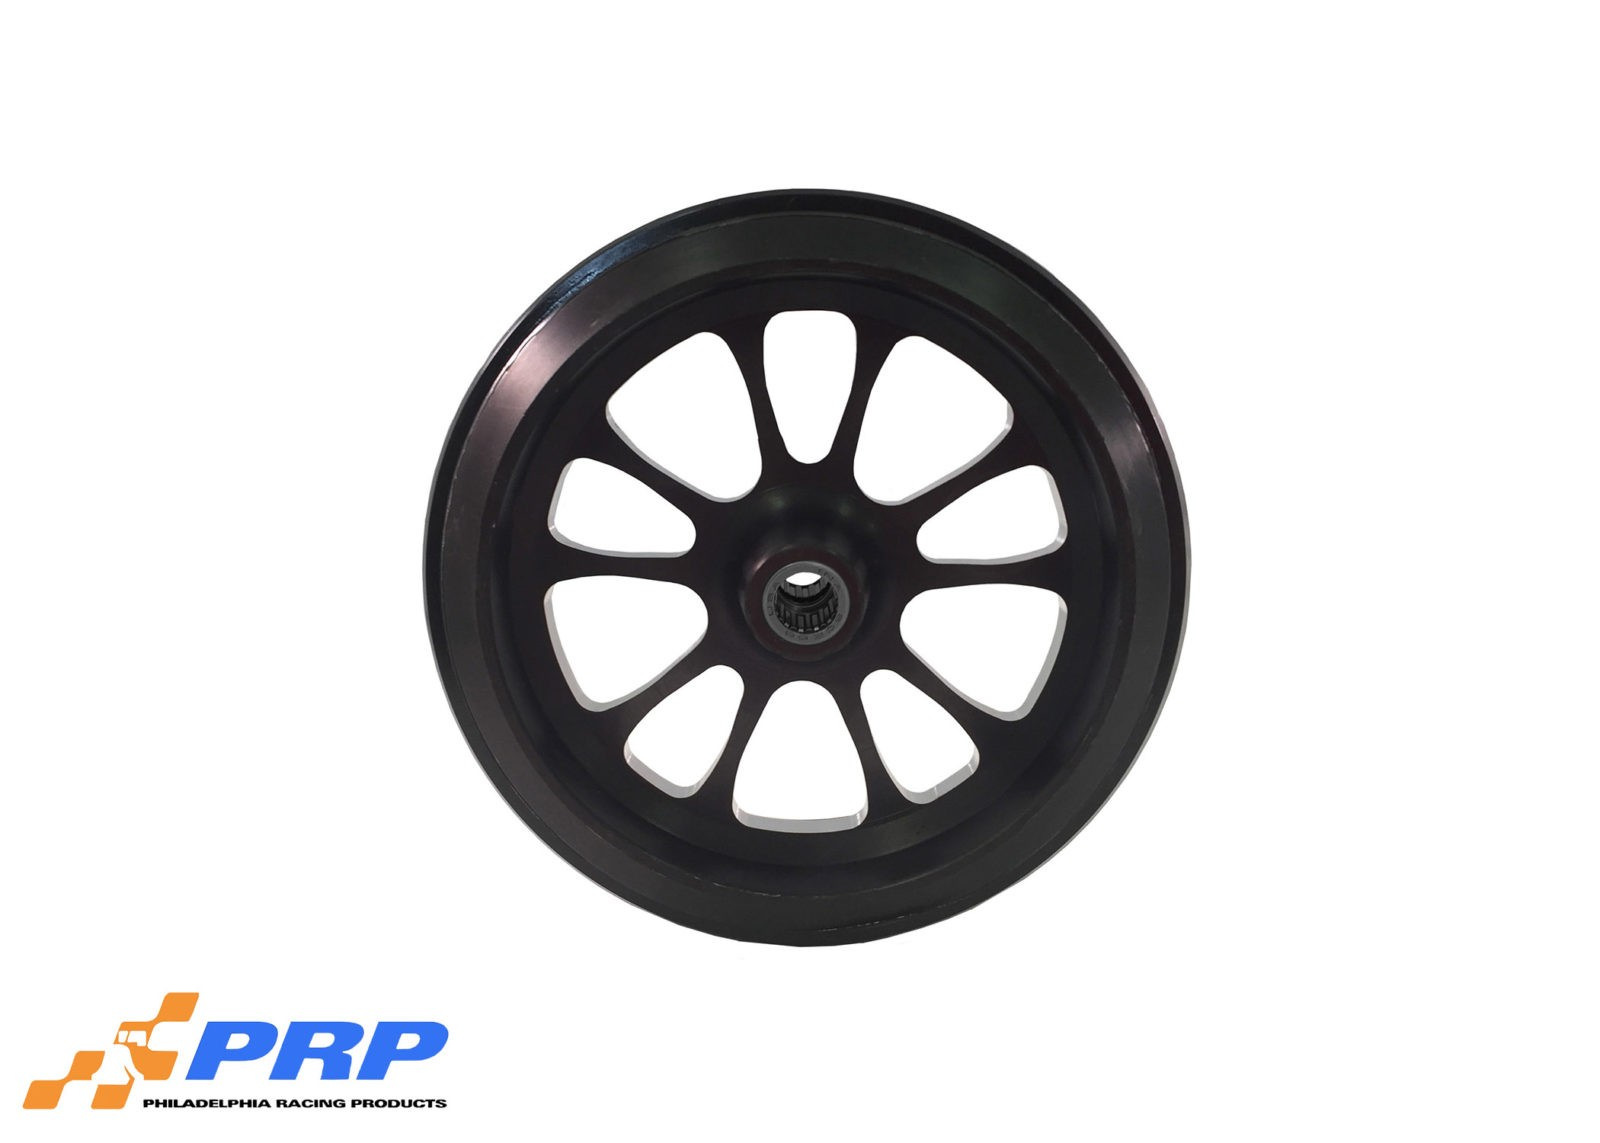 Black Anodized 10 Spoke Style wheelie bar wheels with Bearing made by PRP Racing Products